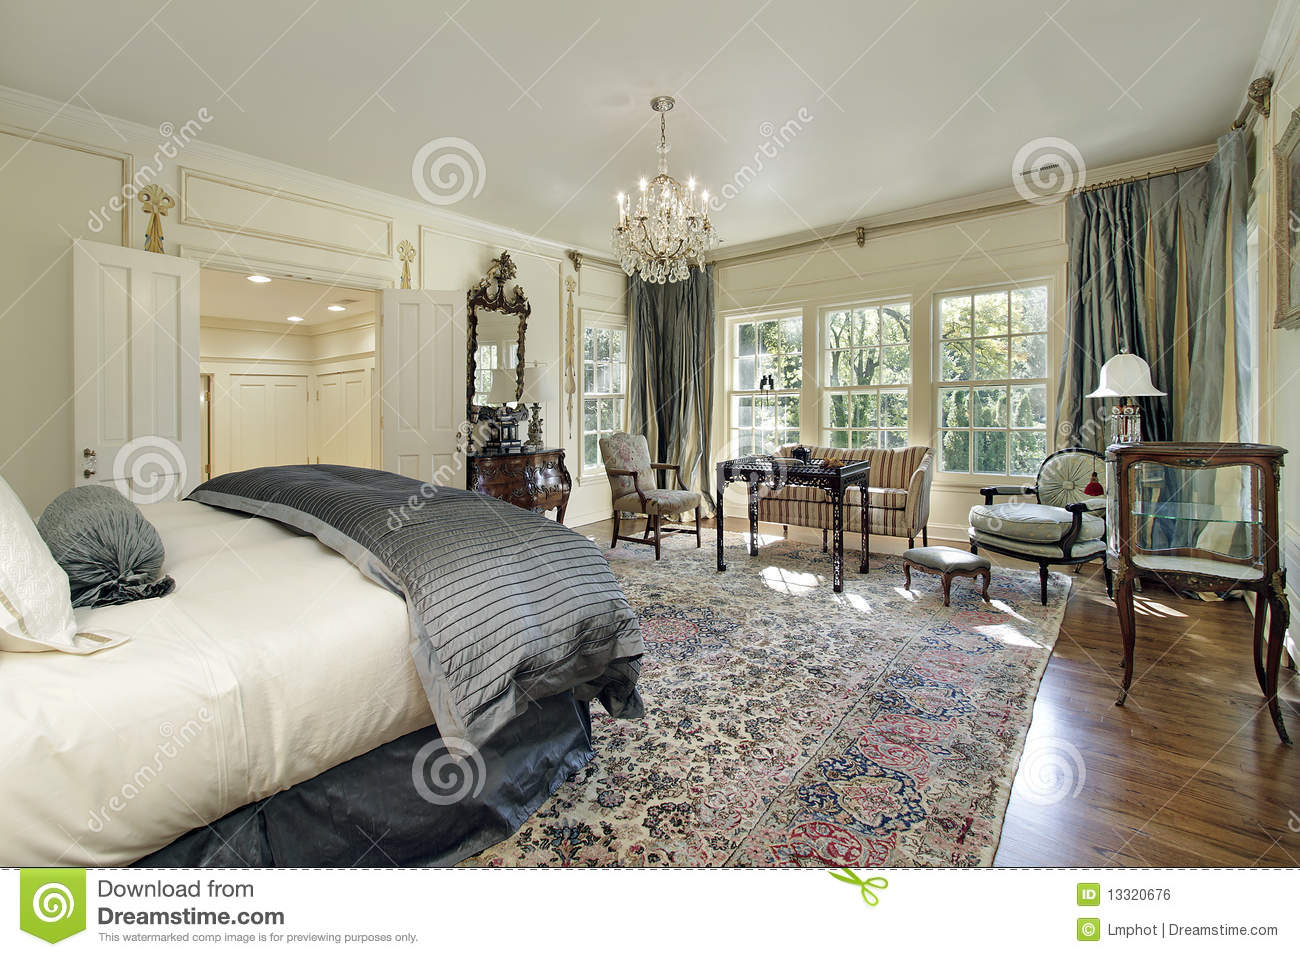 Sitting Room In Master Bedroom Prepossessing Master Bedroom With Sitting Room Stock Photo  Image 13320676 Inspiration Design